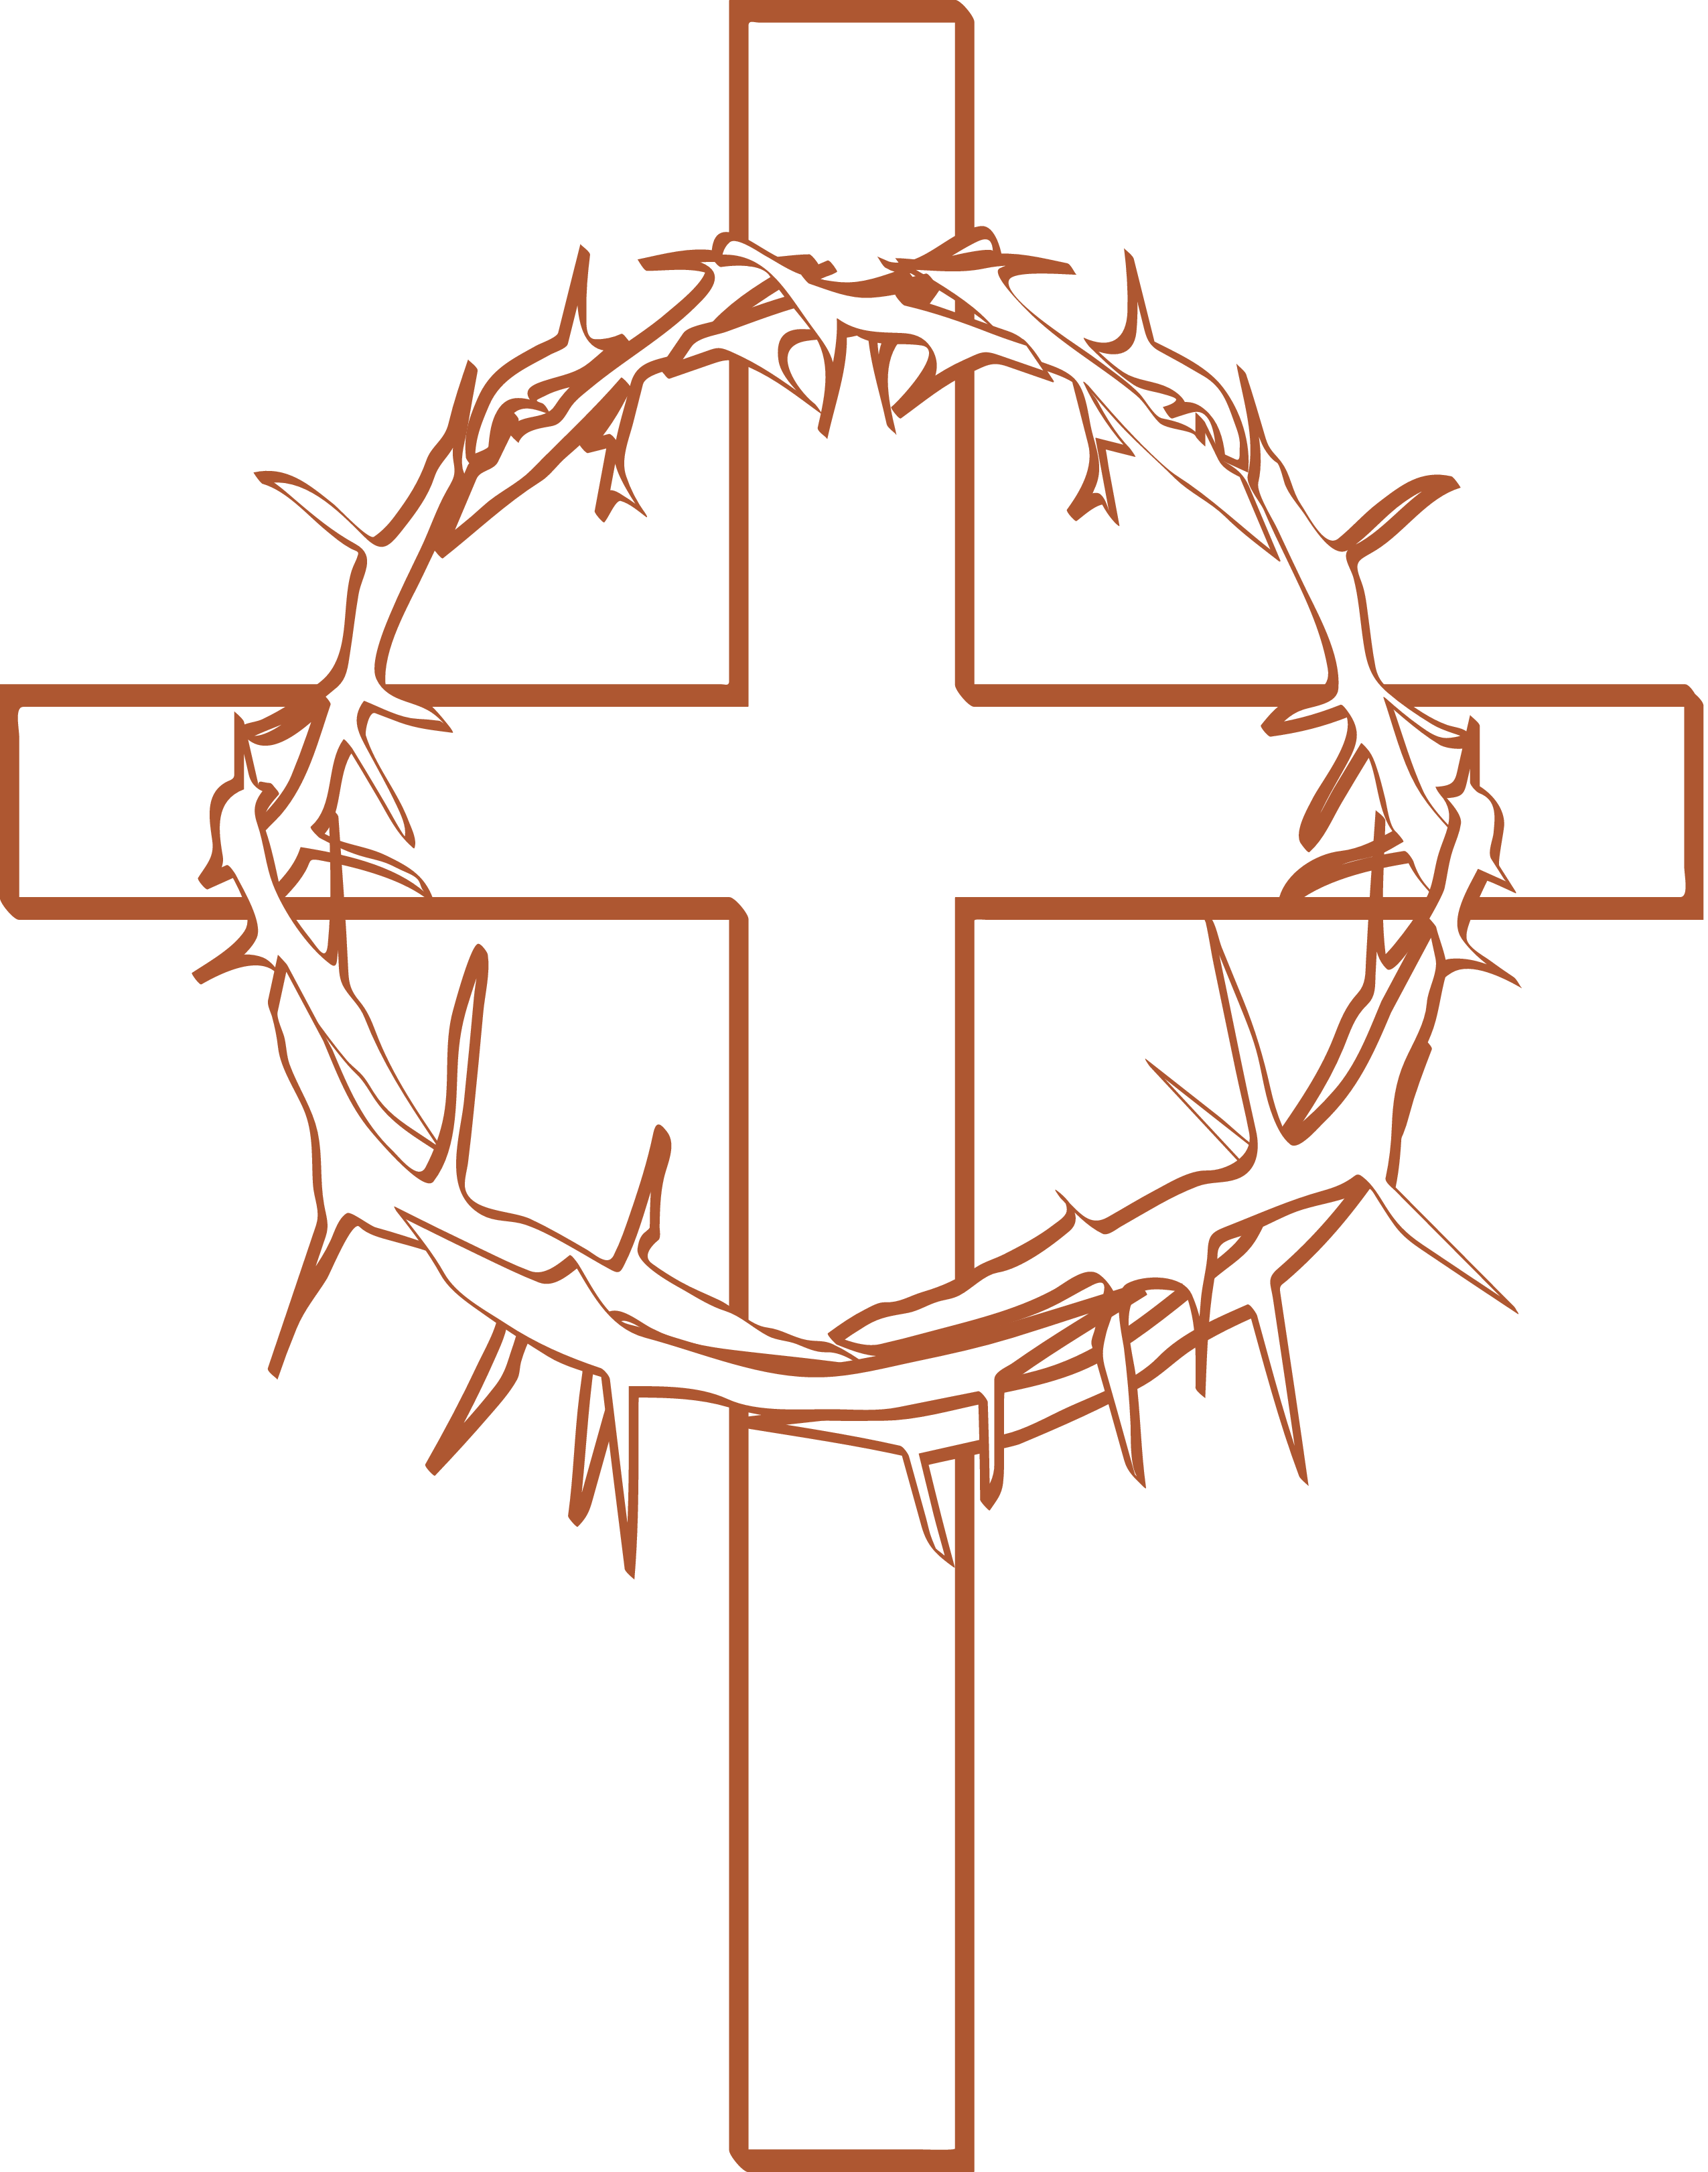 Heart crown clipart picture black and white download Calvary Crown of thorns Cross and Crown Christian cross Clip art ... picture black and white download